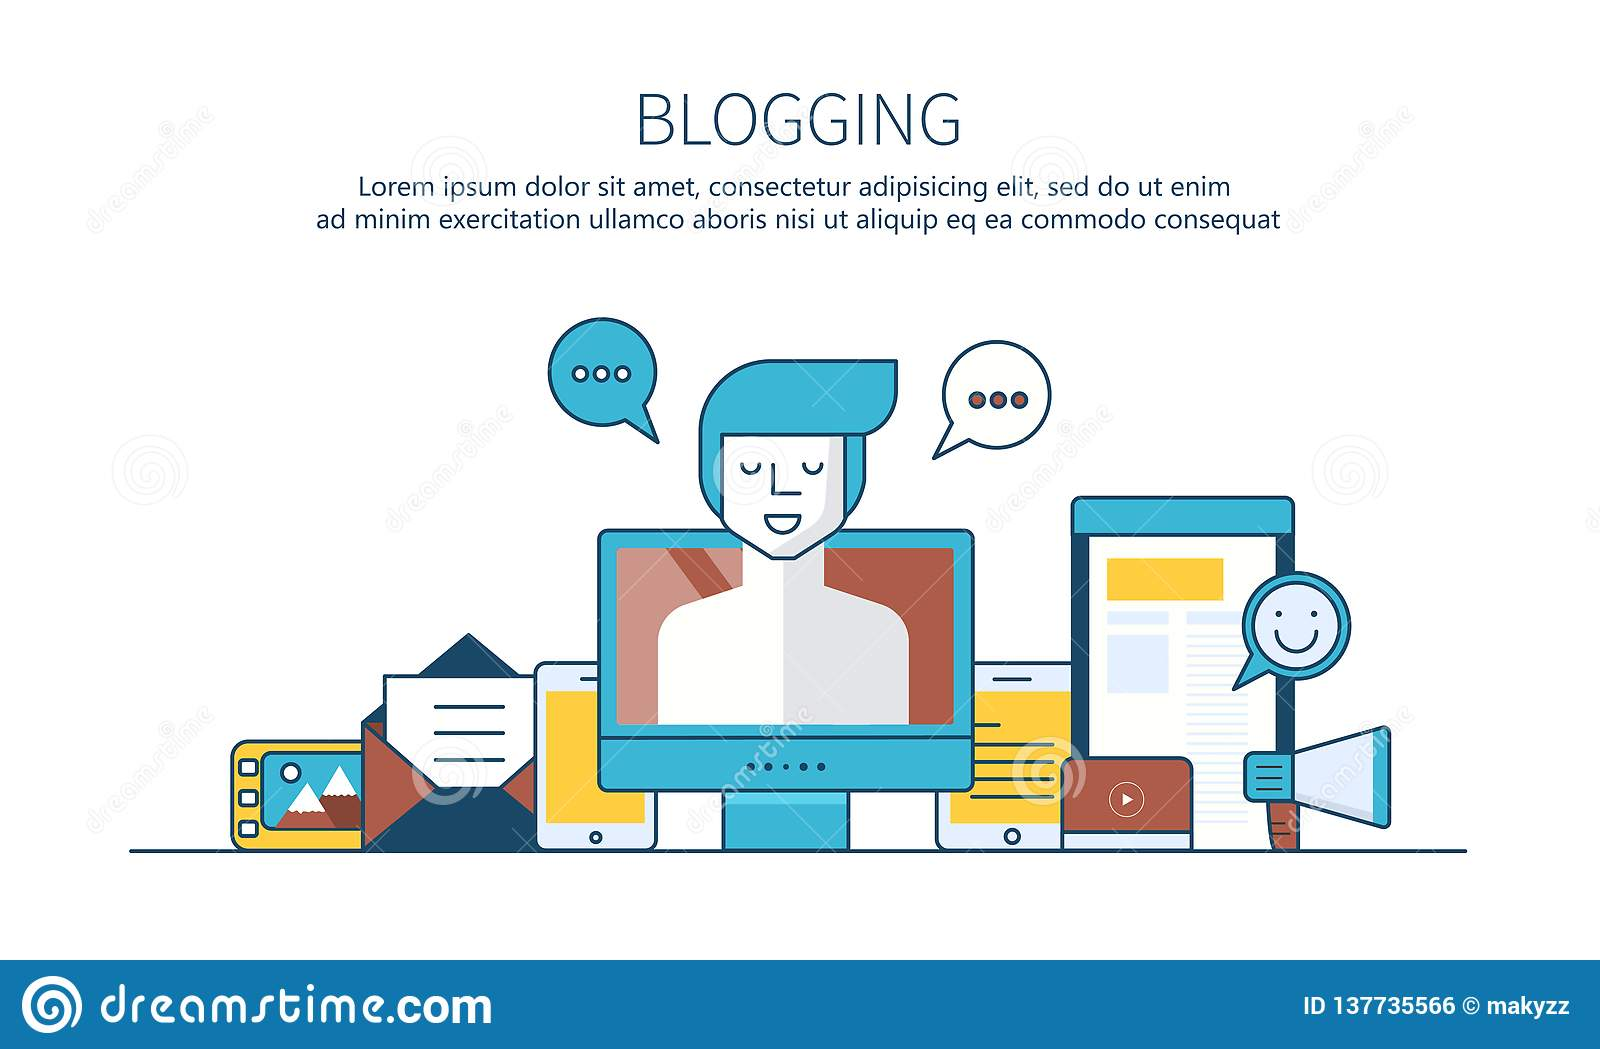 Writing a story or column for newspaper or magazine. Outline concept. Blogging concept.